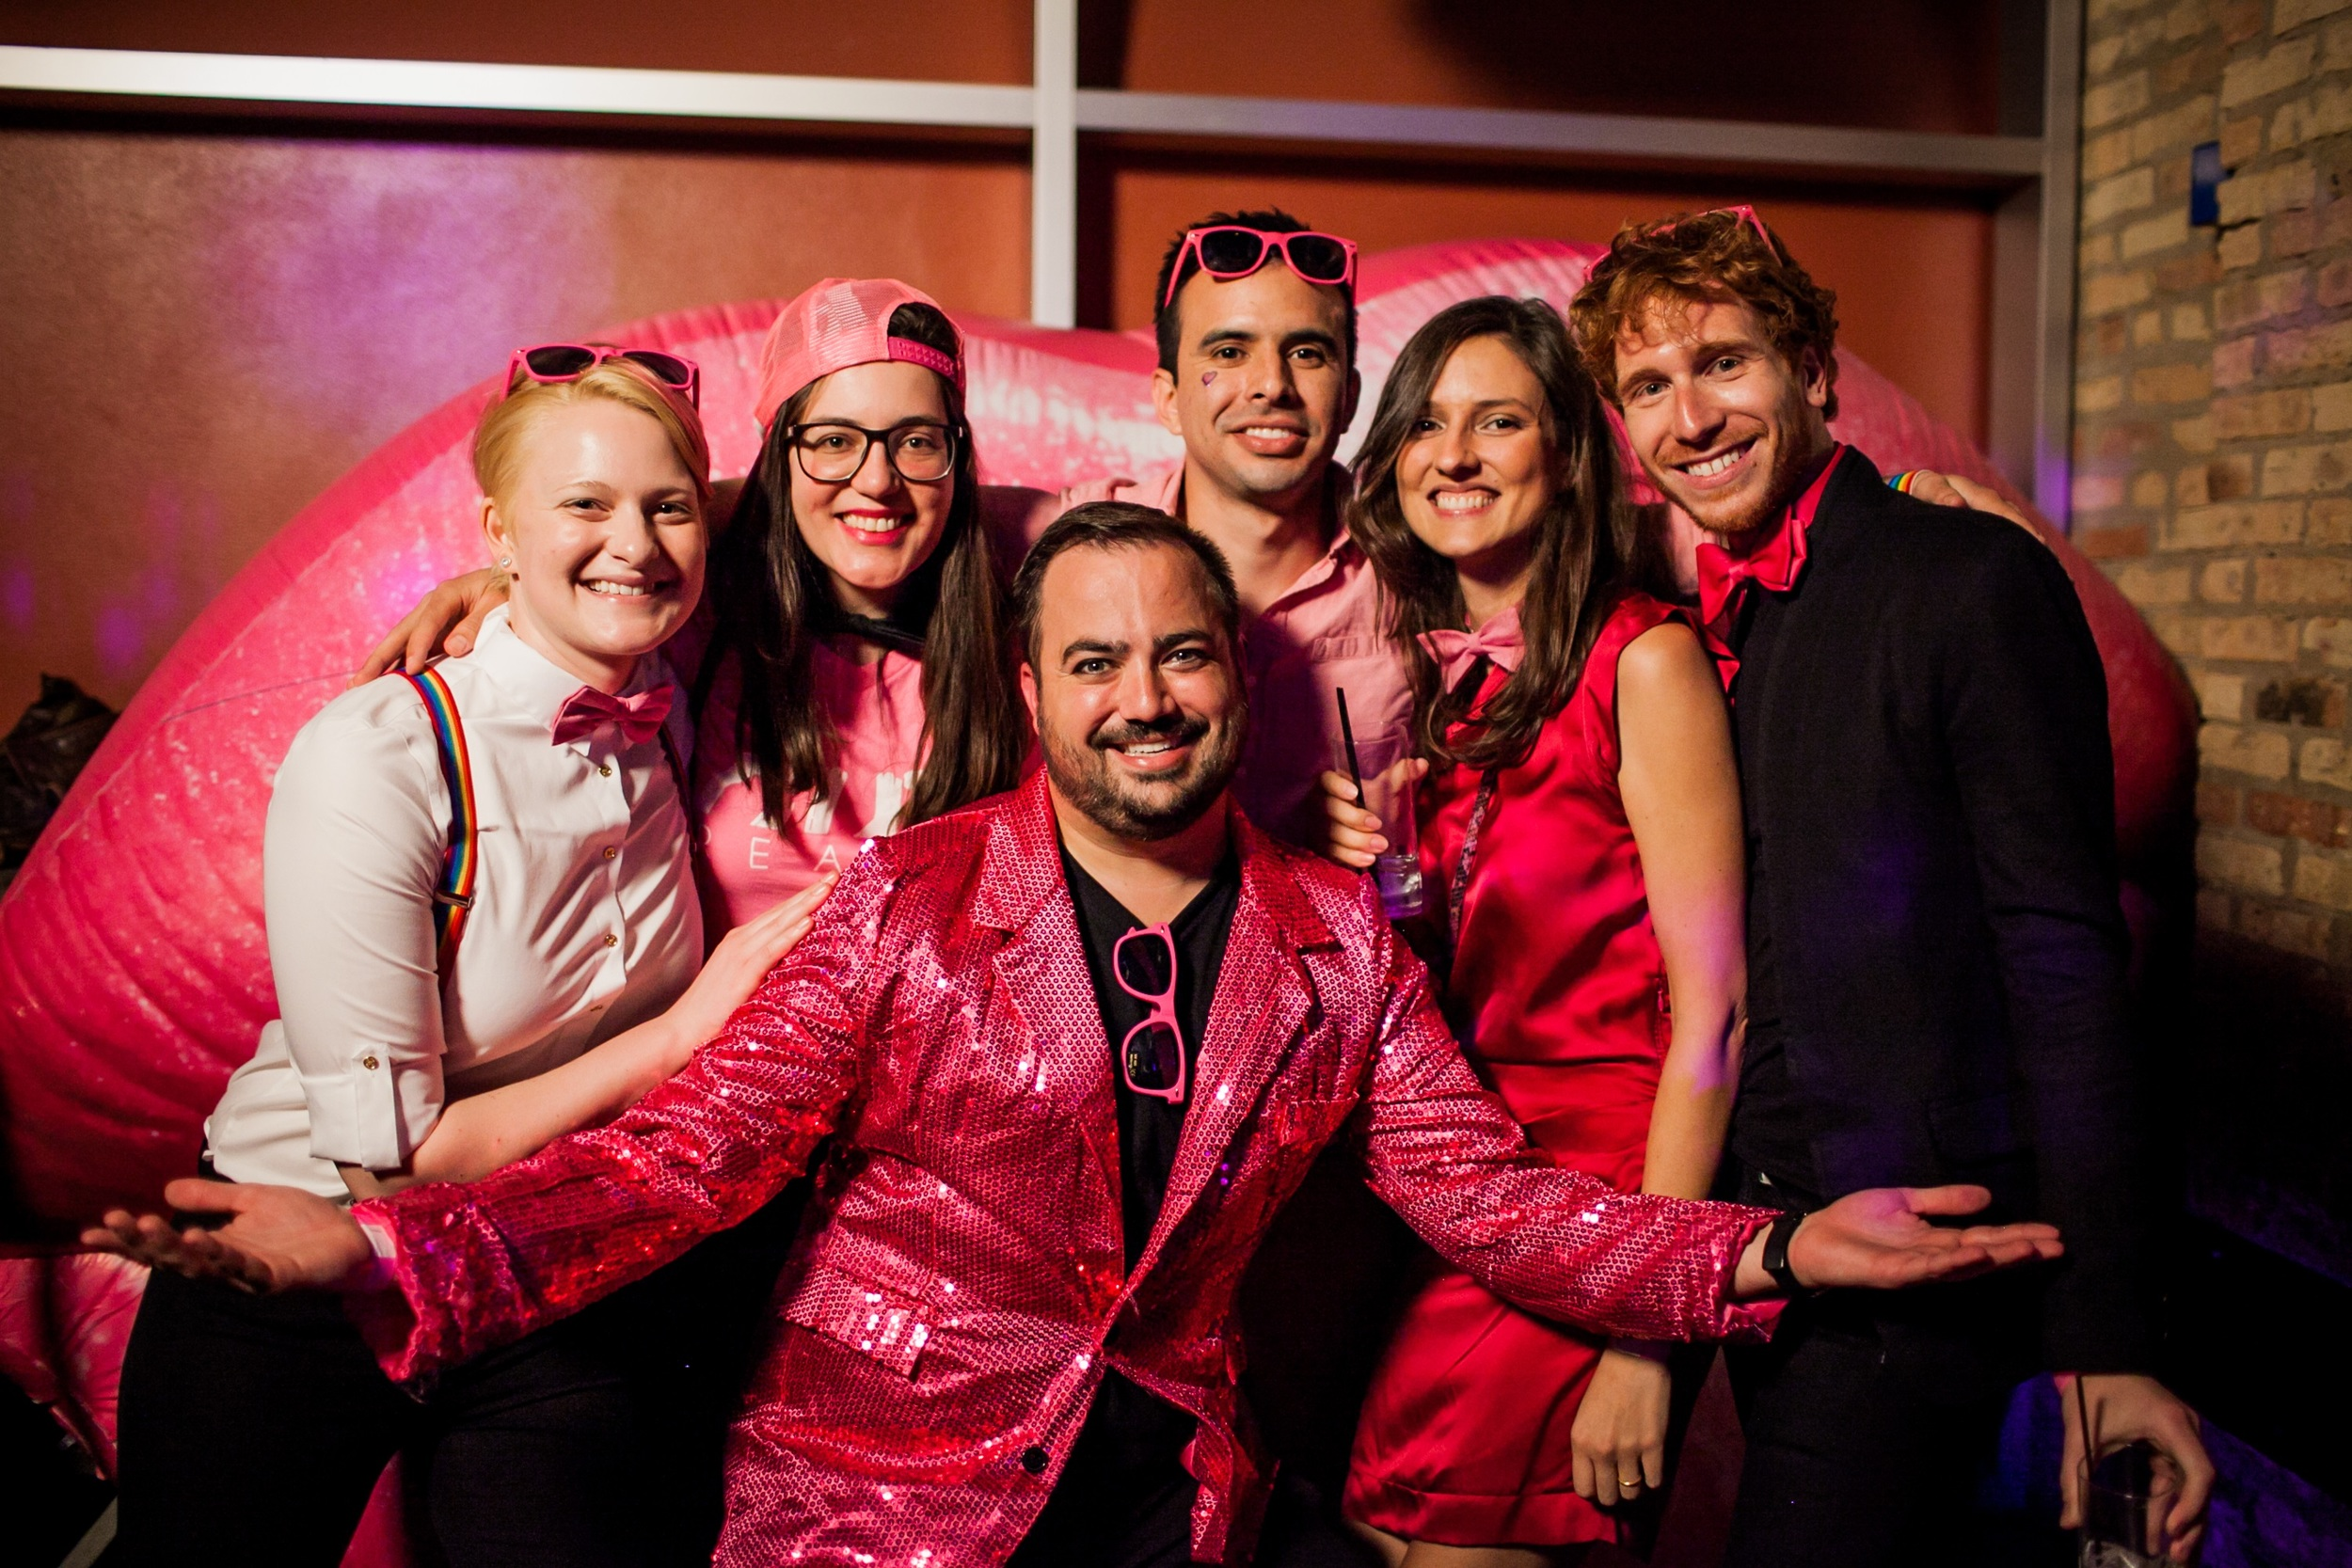 Booth OUTreach co-chair and project leader,Erik Underwood (center),strikes a pose with his fellow co-chairs in front of the signature pink lips at OUTreach's annual #PinkParty at Sidetrack Video Bar in Boystown.